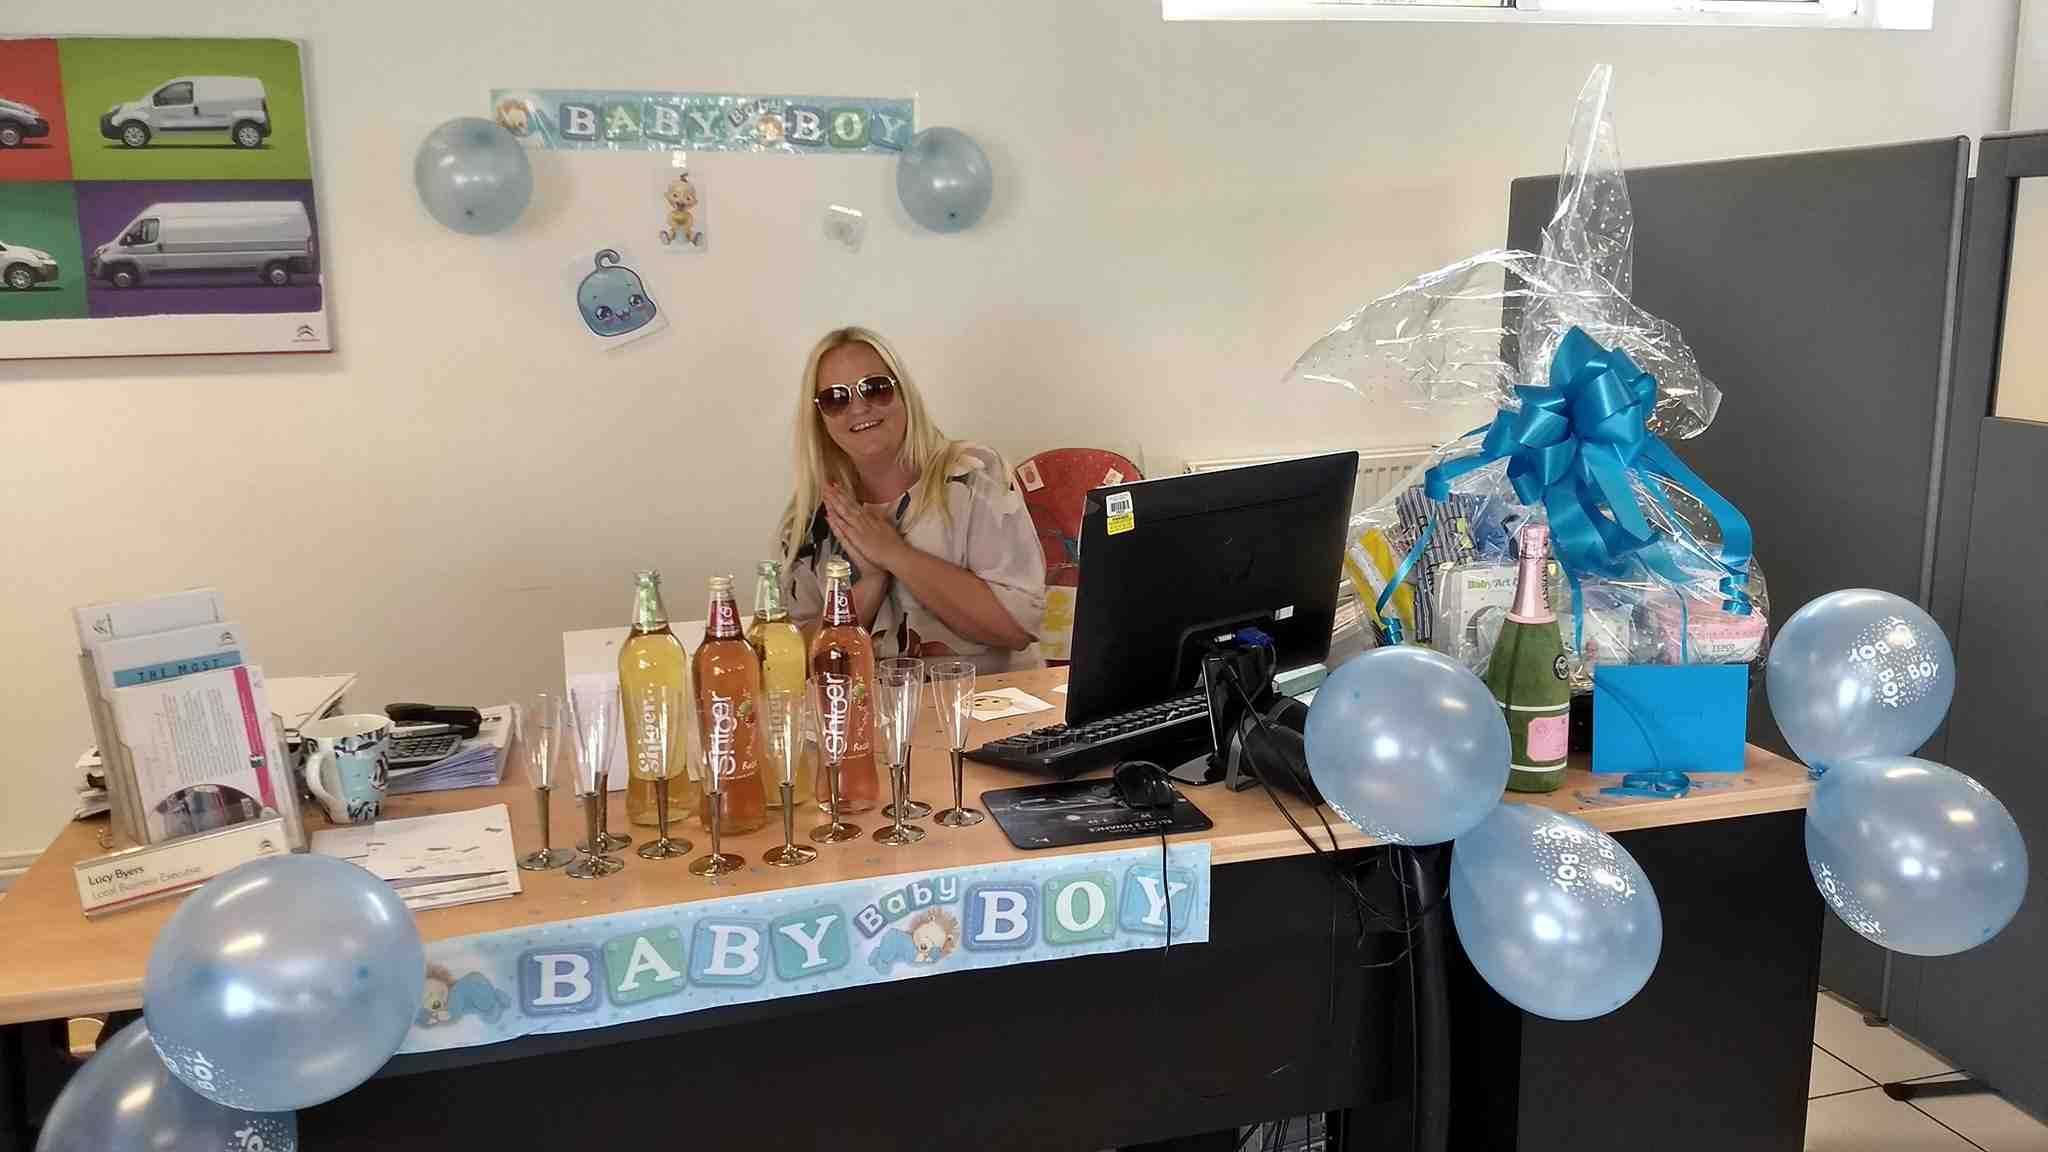 Lucy Leasing is having a baby